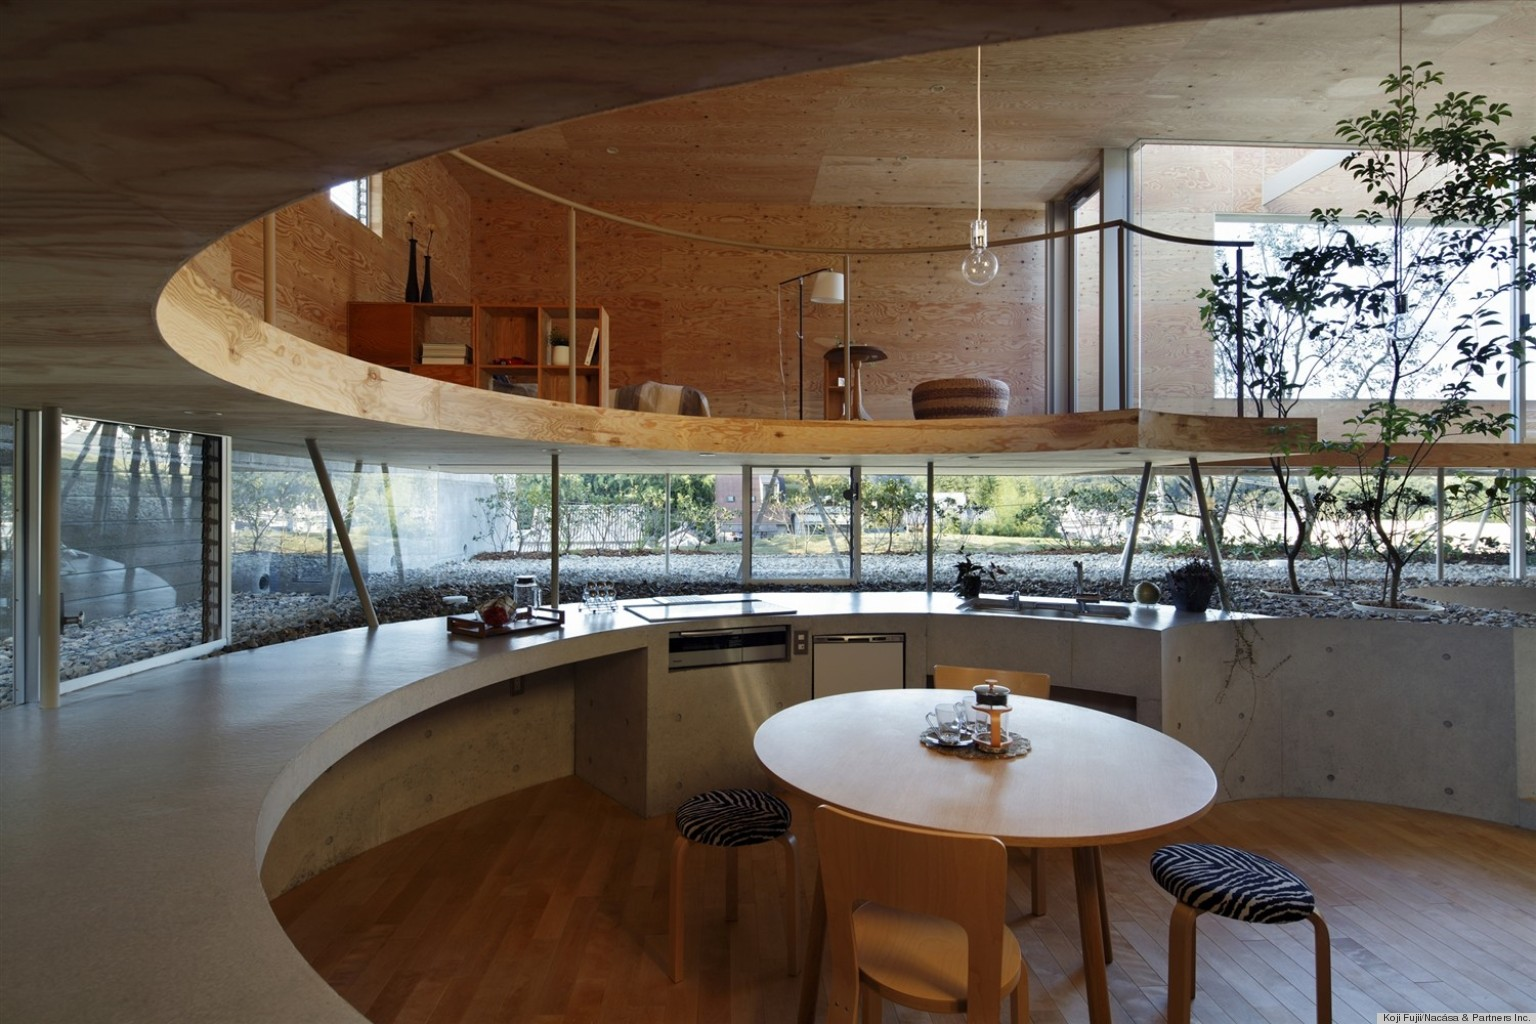 House tour inside the 39 pit house 39 designed by japanese firm uid architects huffpost - Case giapponesi moderne ...